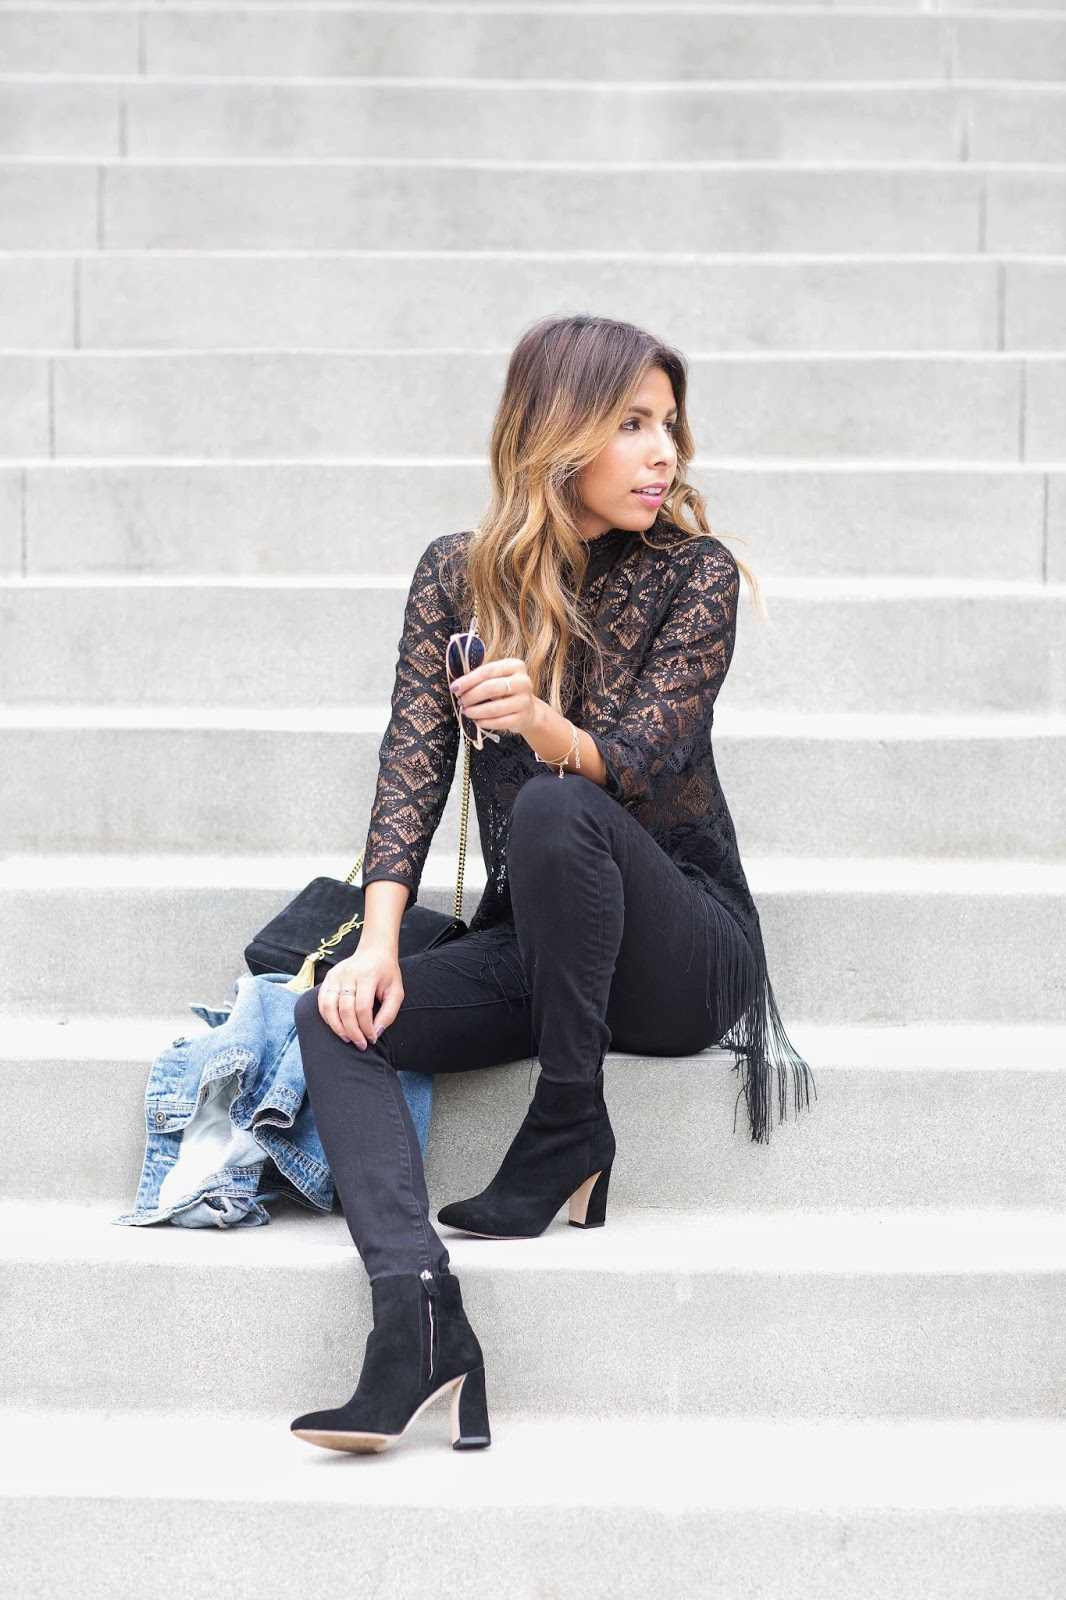 lace top zara, how to wear all black, denim jacket styles, black boot outfit for fall